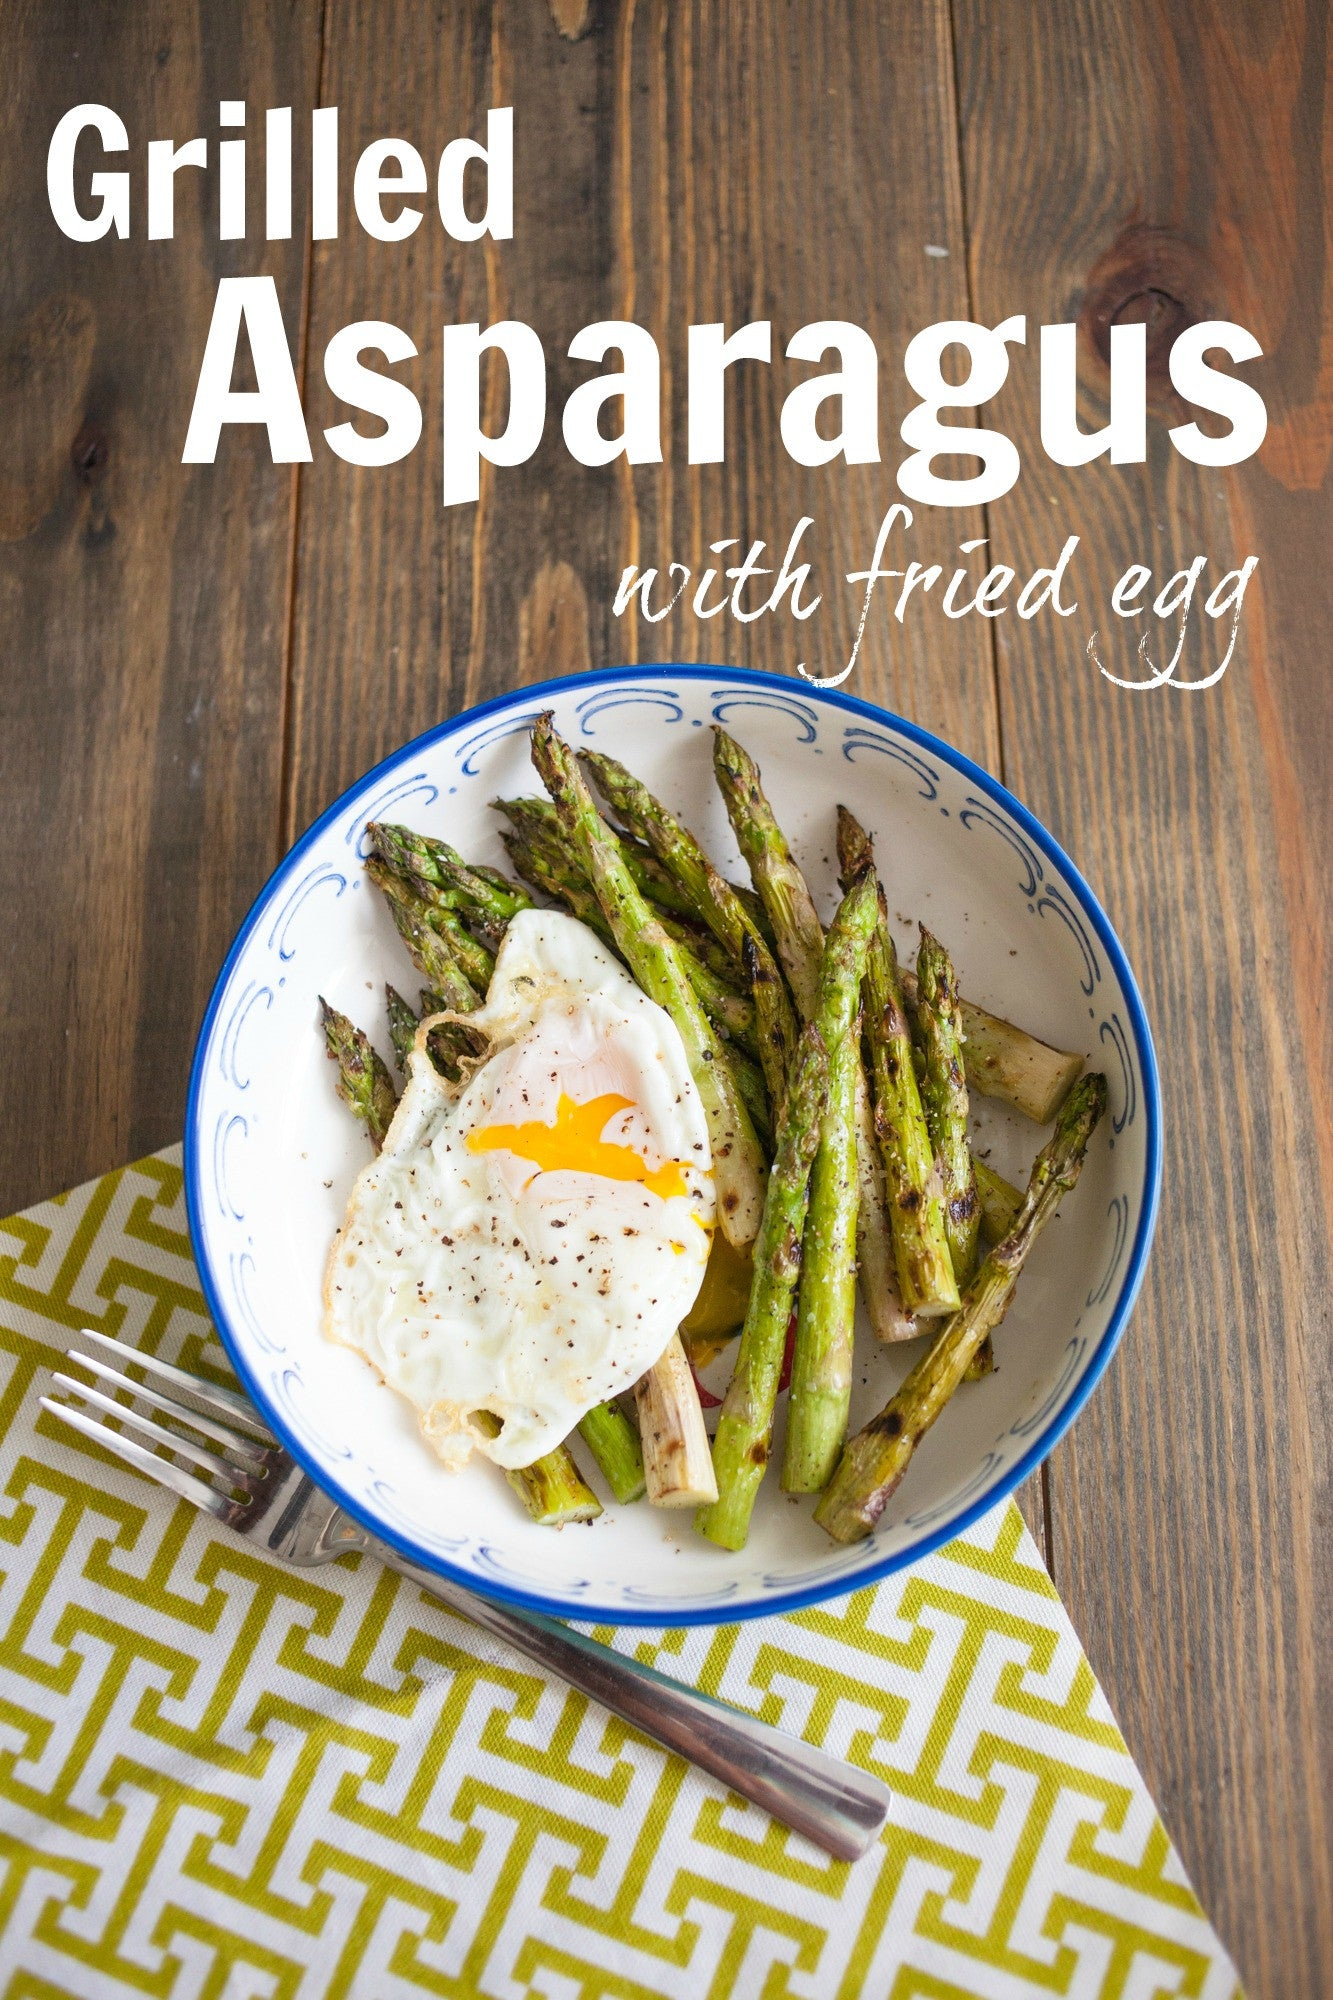 Grilled Asparagus with Fried Egg Salad